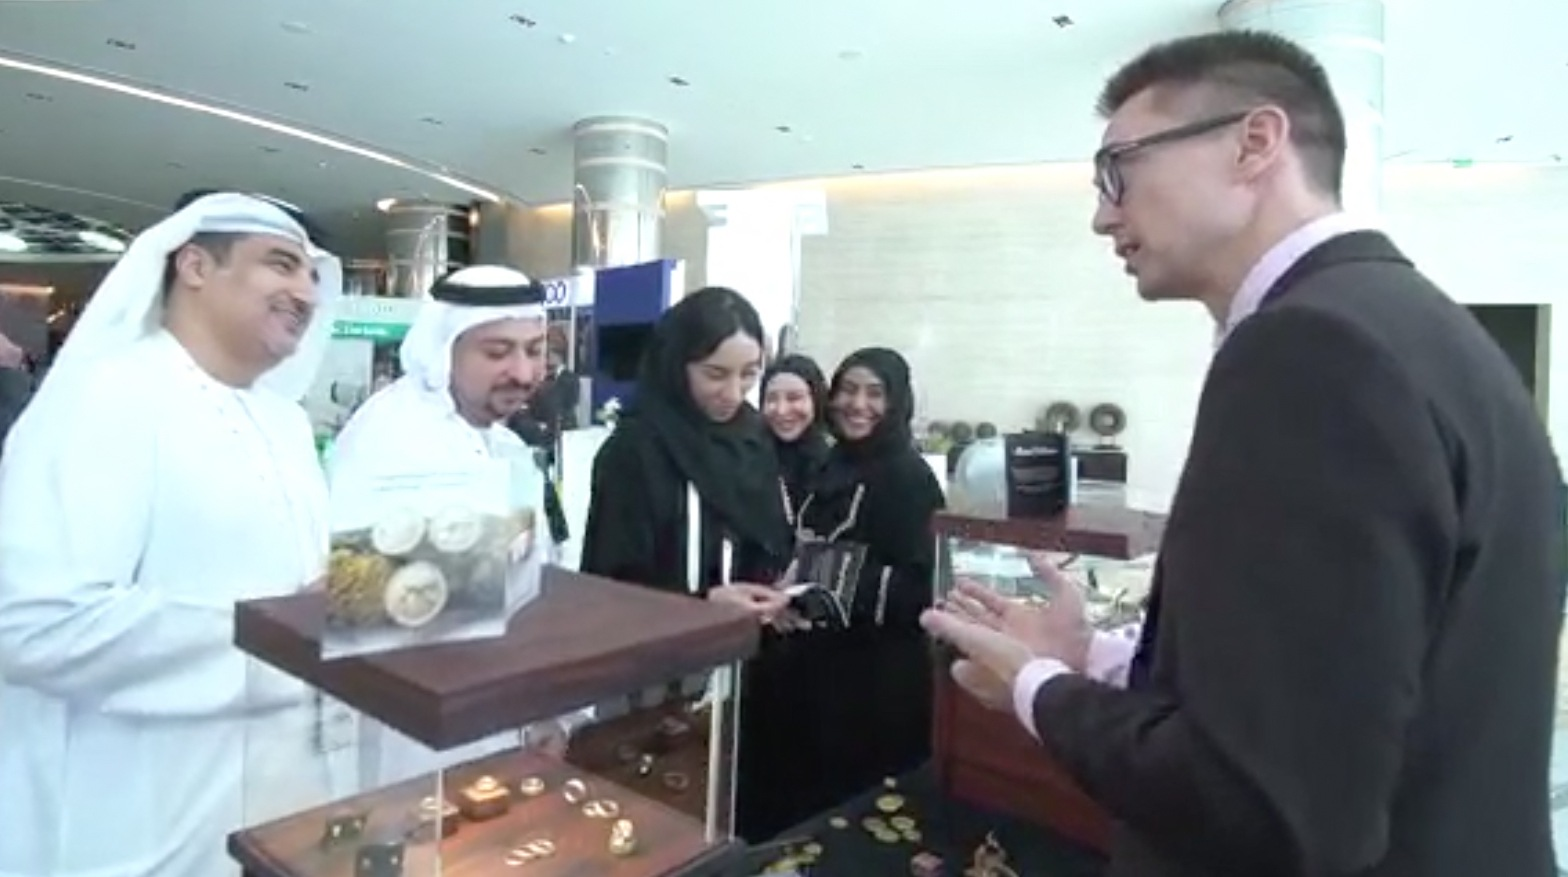 RetinaJewelry exhibiting in Abu Dhabi, explaining to committee